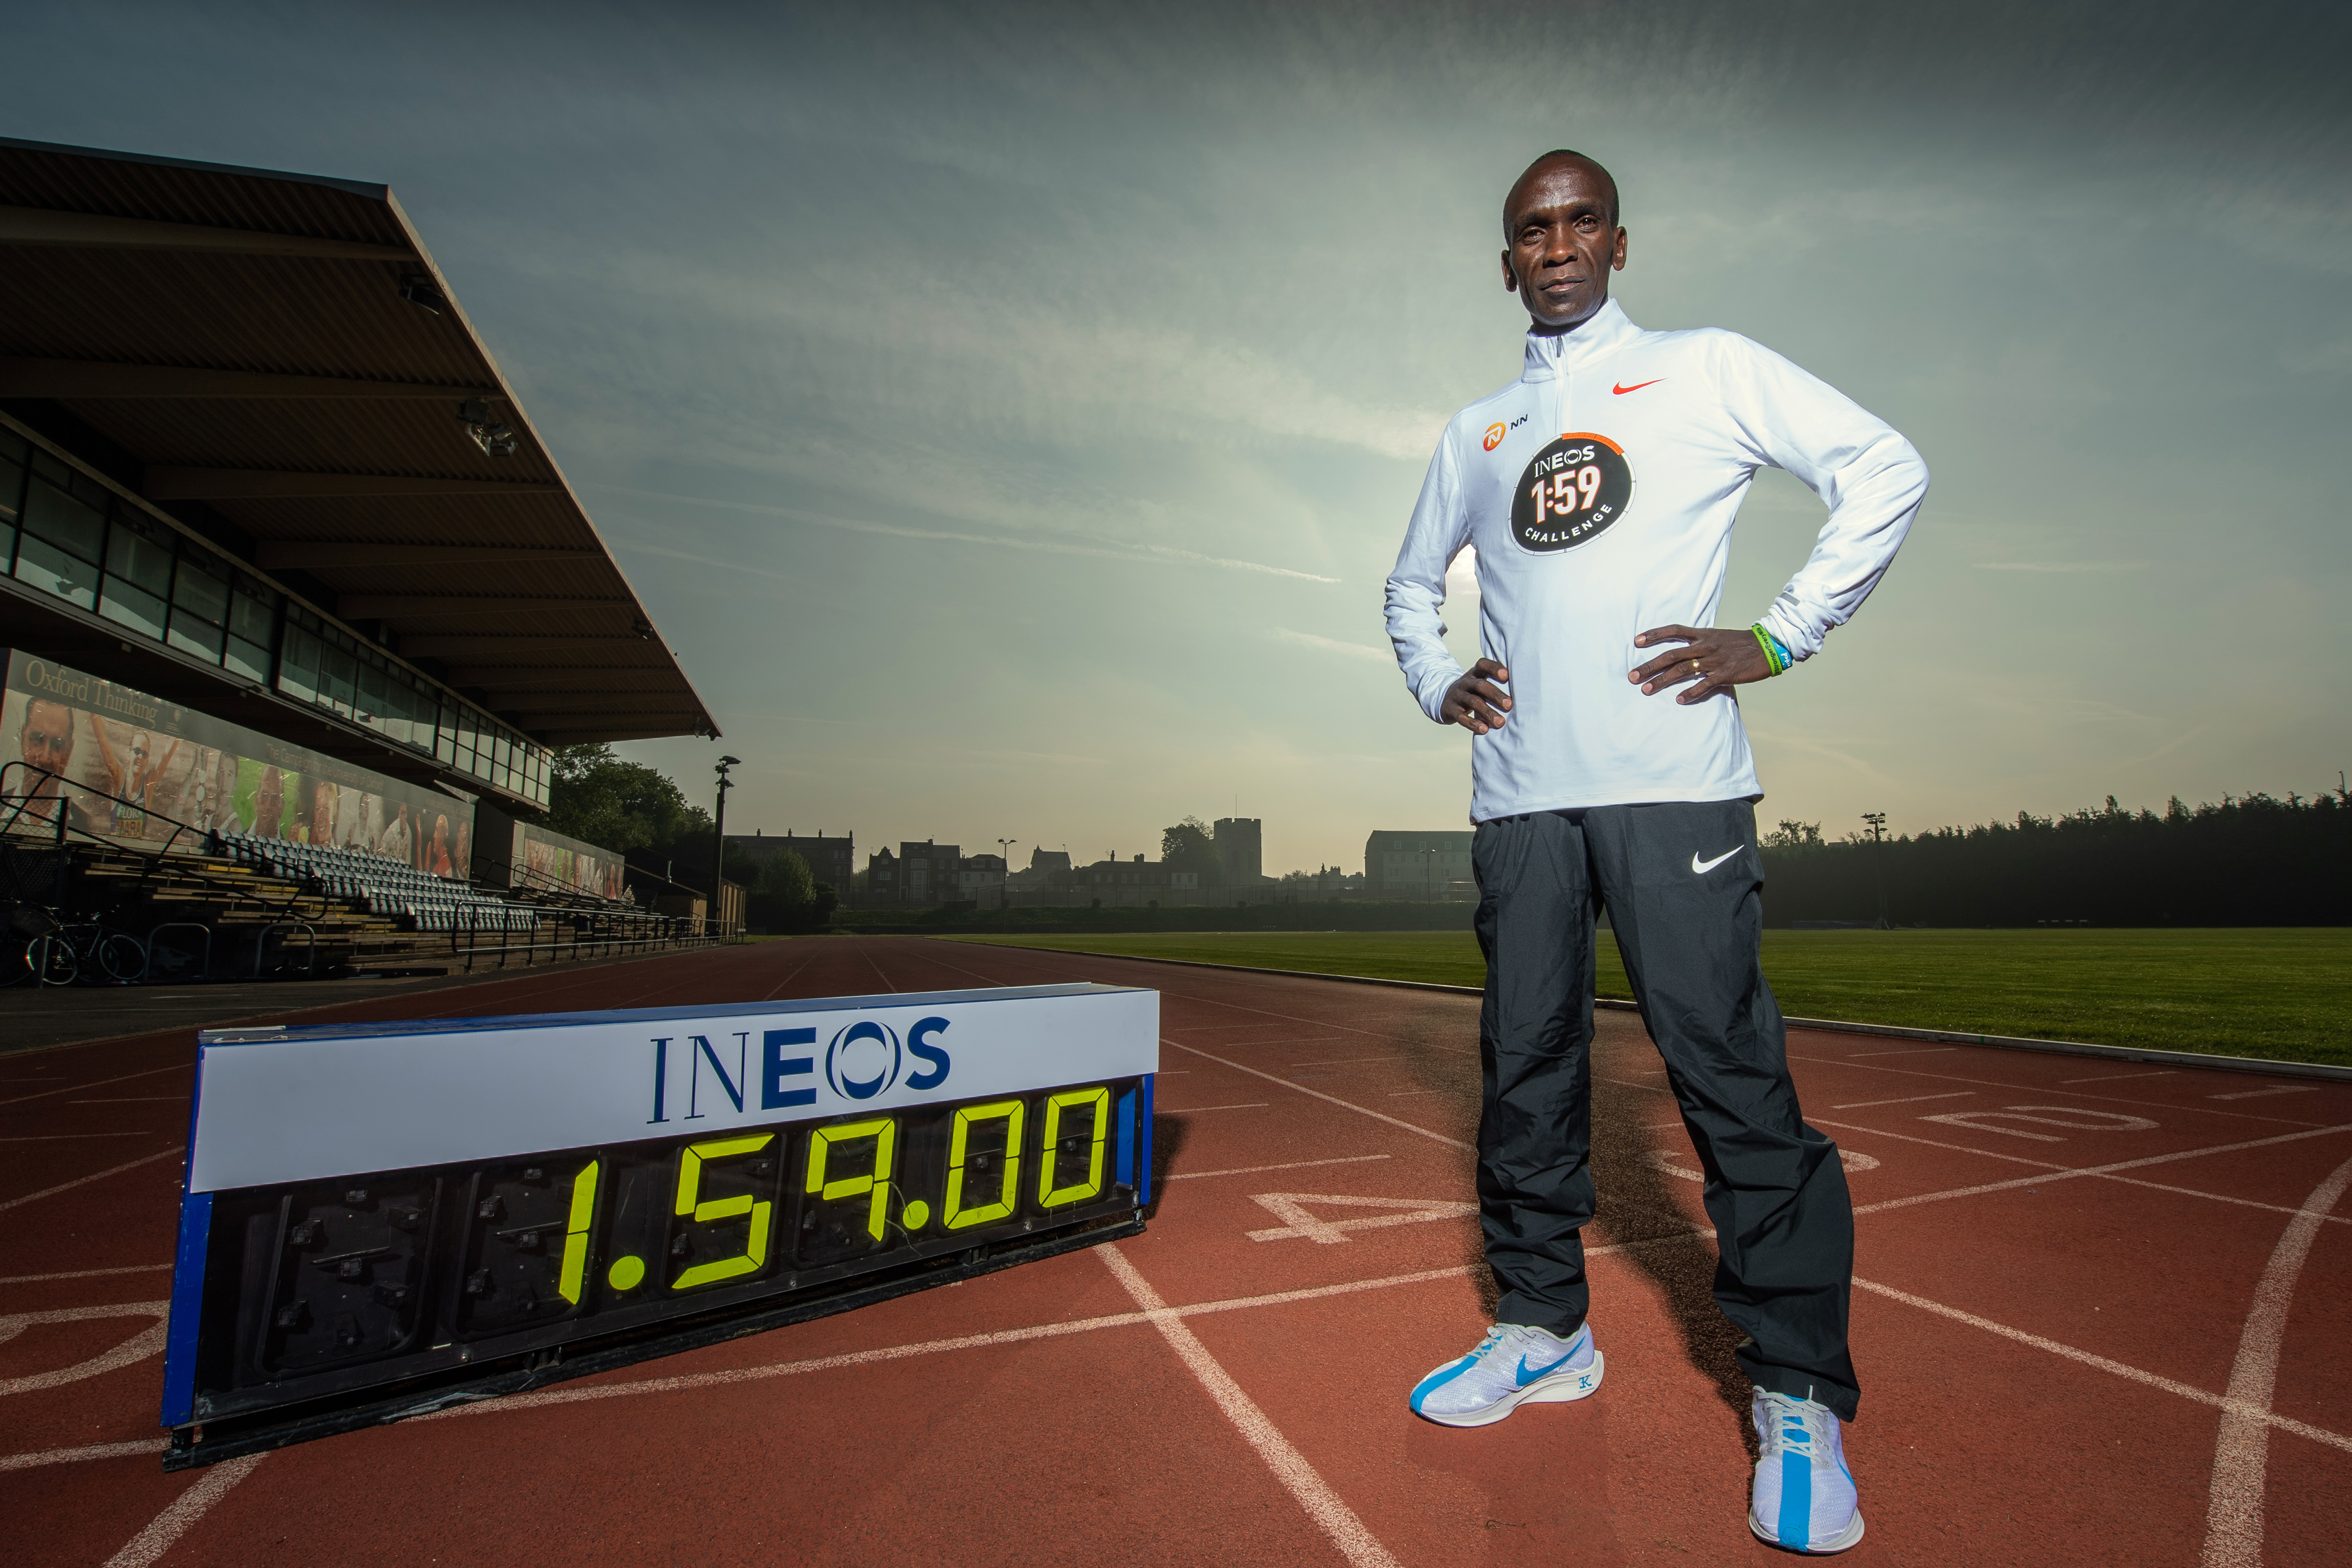 Eliud Kipchoge KEN, at the Iffley road running track on the 30th April 2019. Photo: Thomas Lovelock for london marathon events